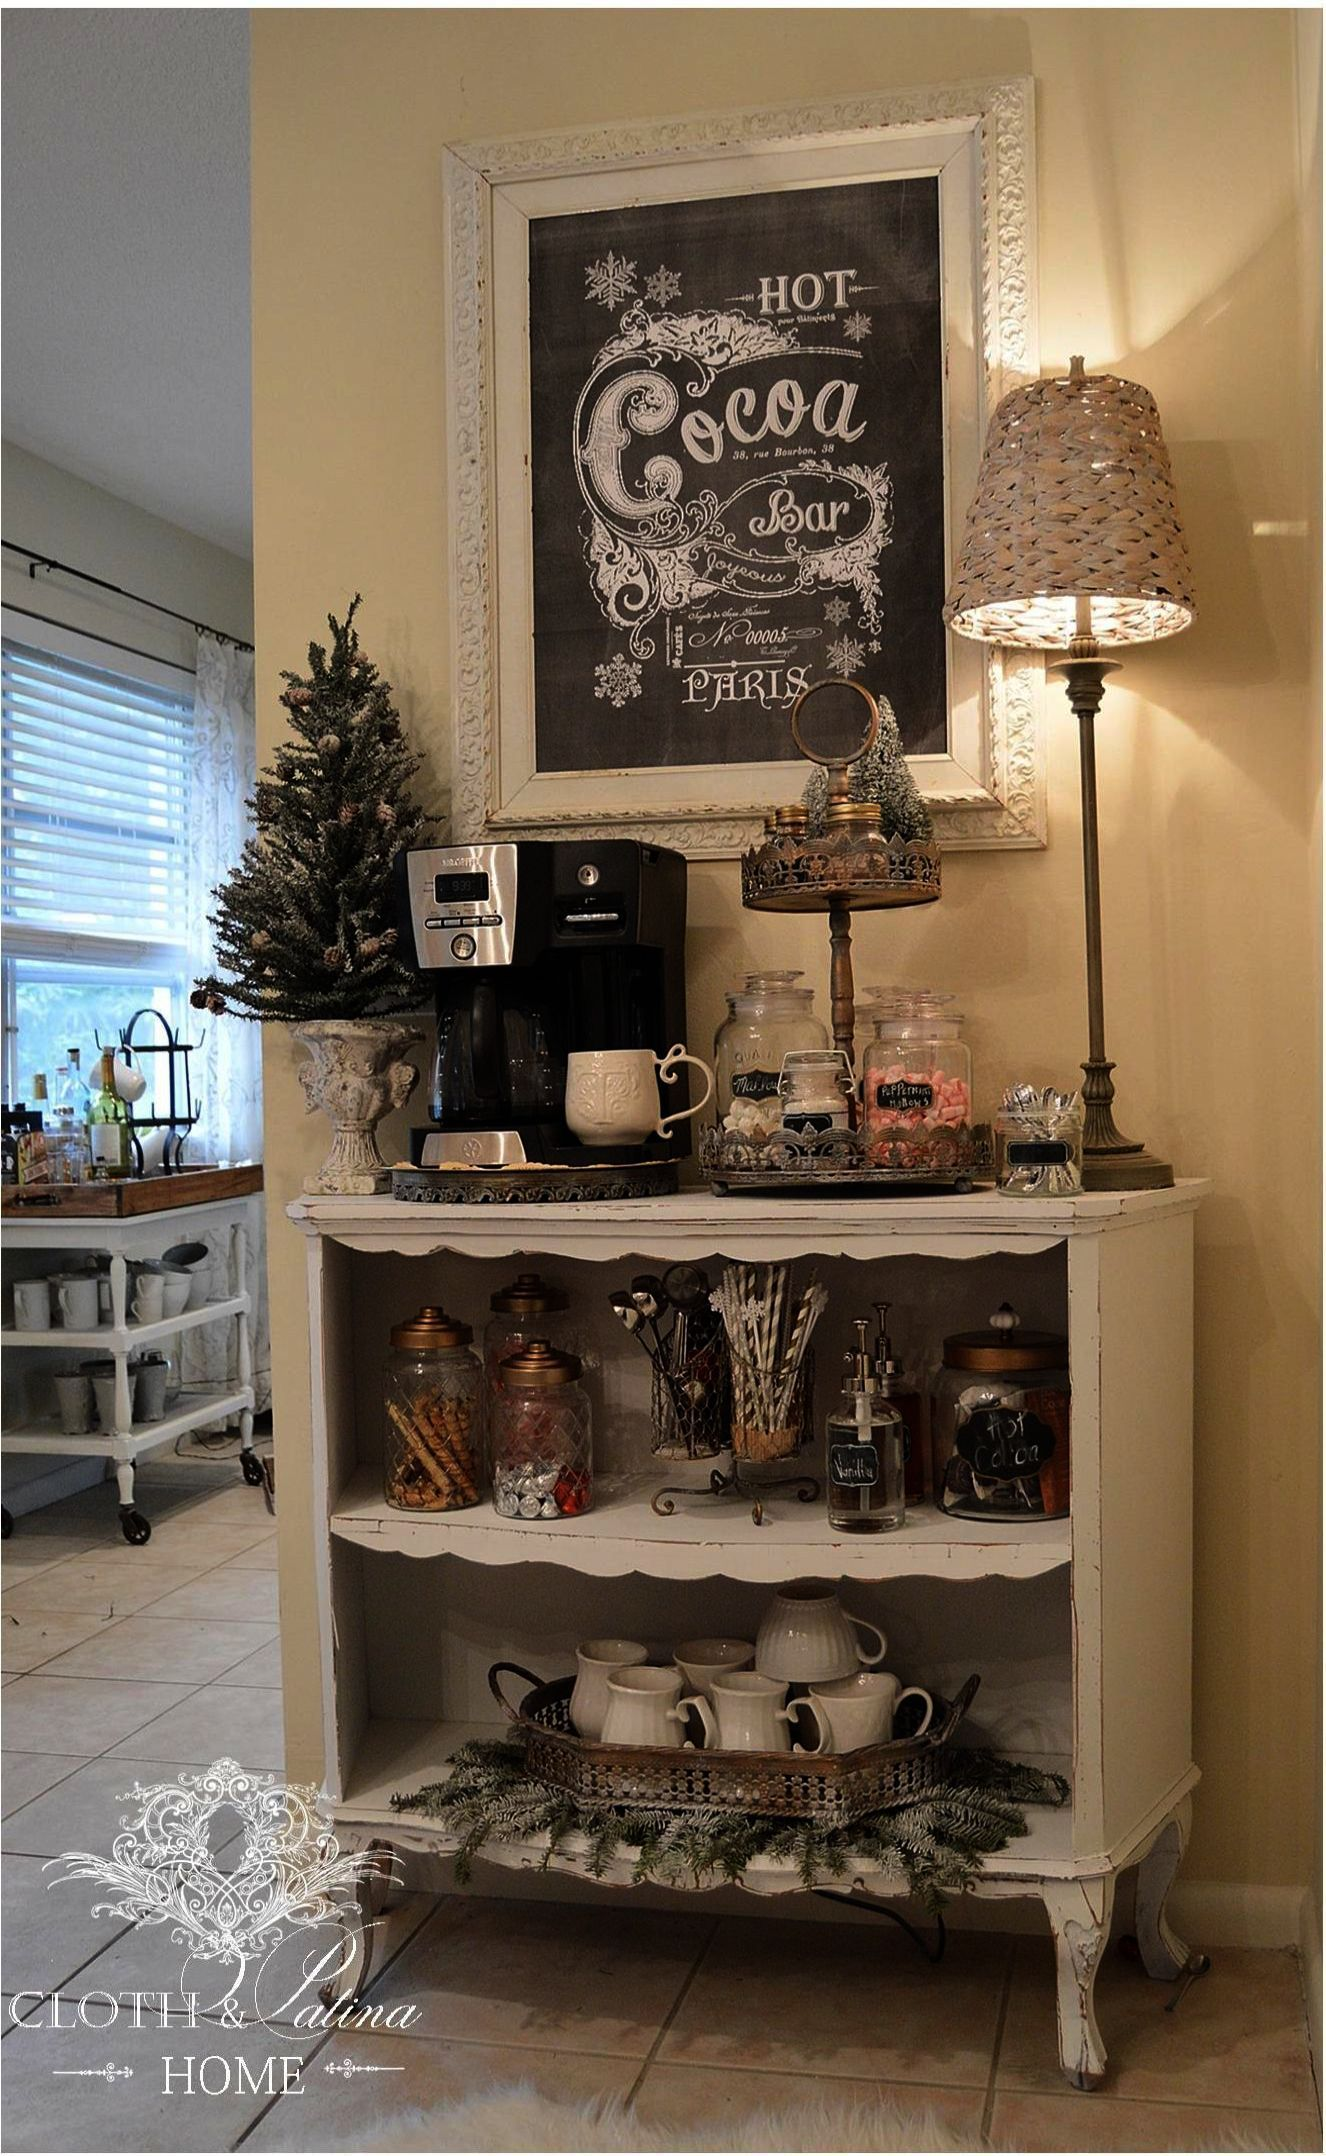 Coffee Maker Large Capacity Either Coffee Table Marble Order Coffee Shop Near Me Fort Collins Coffee Bar Home Bars For Home Diy Coffee Bar